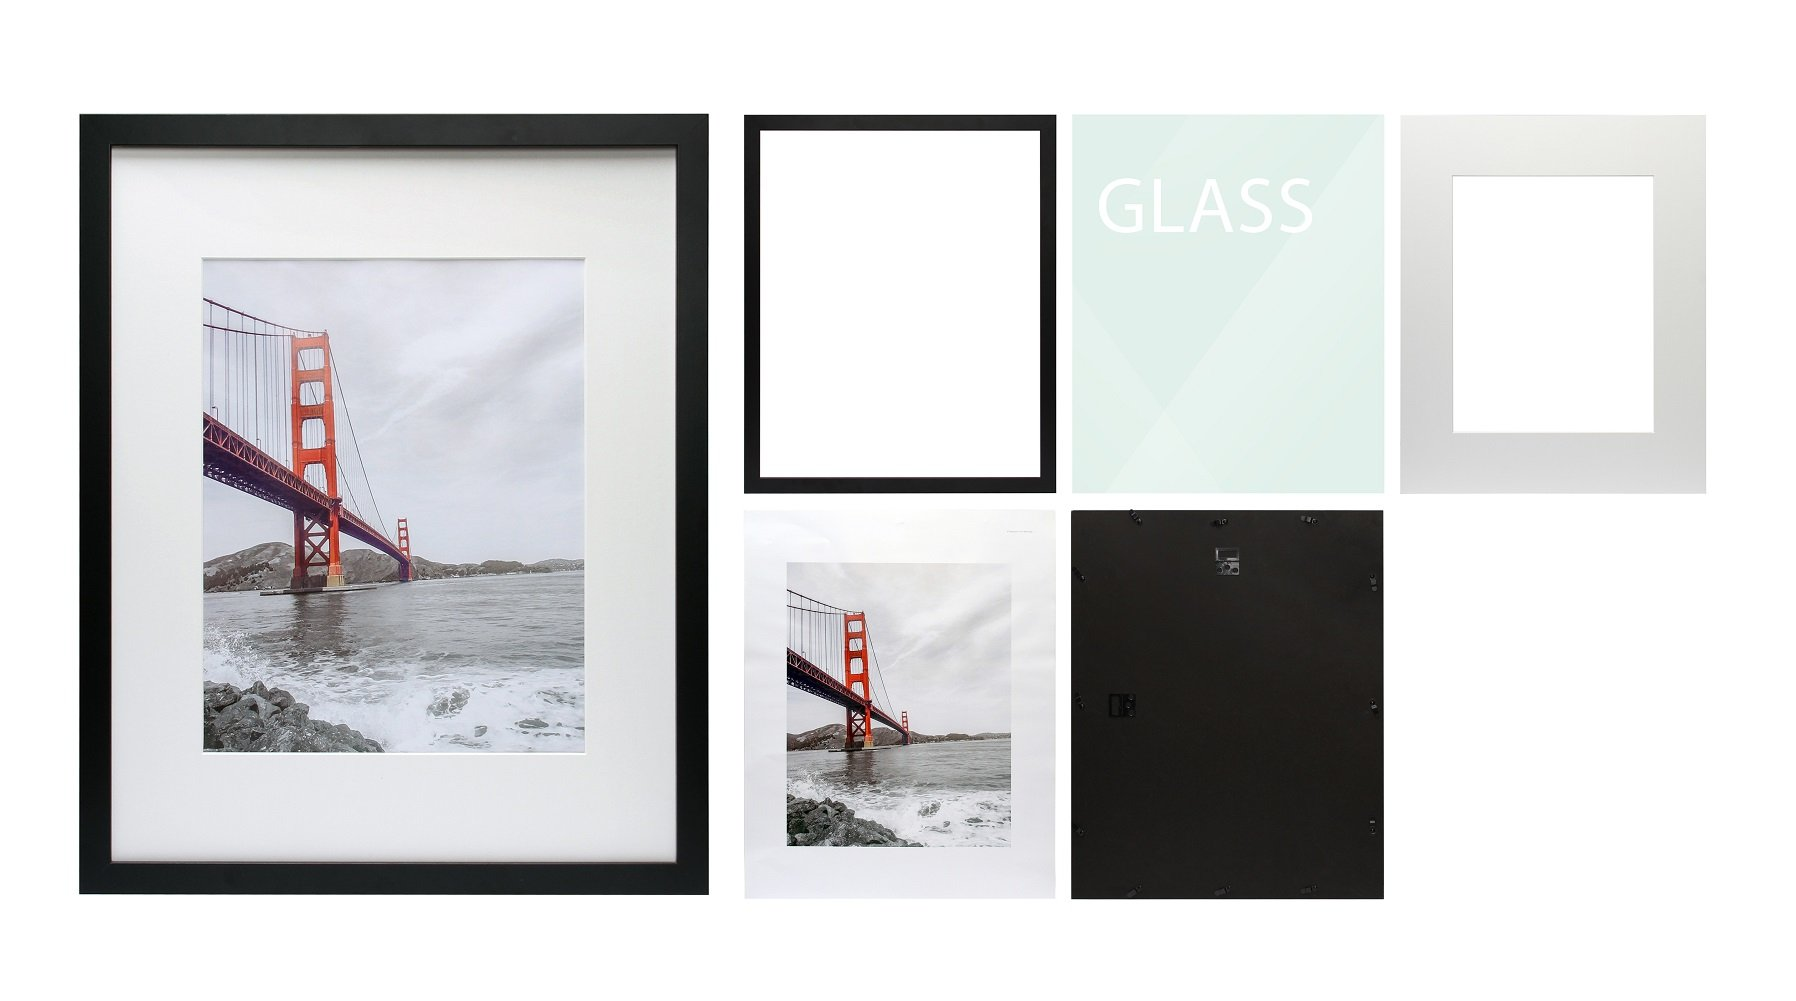 Frametory 16x20 black picture frame made to display pictures frametory 16x20 black picture frame made to display pictures 11x14 photo with ivory color mat wide molding preinstalled wall mounting hardware 16x20 jeuxipadfo Gallery